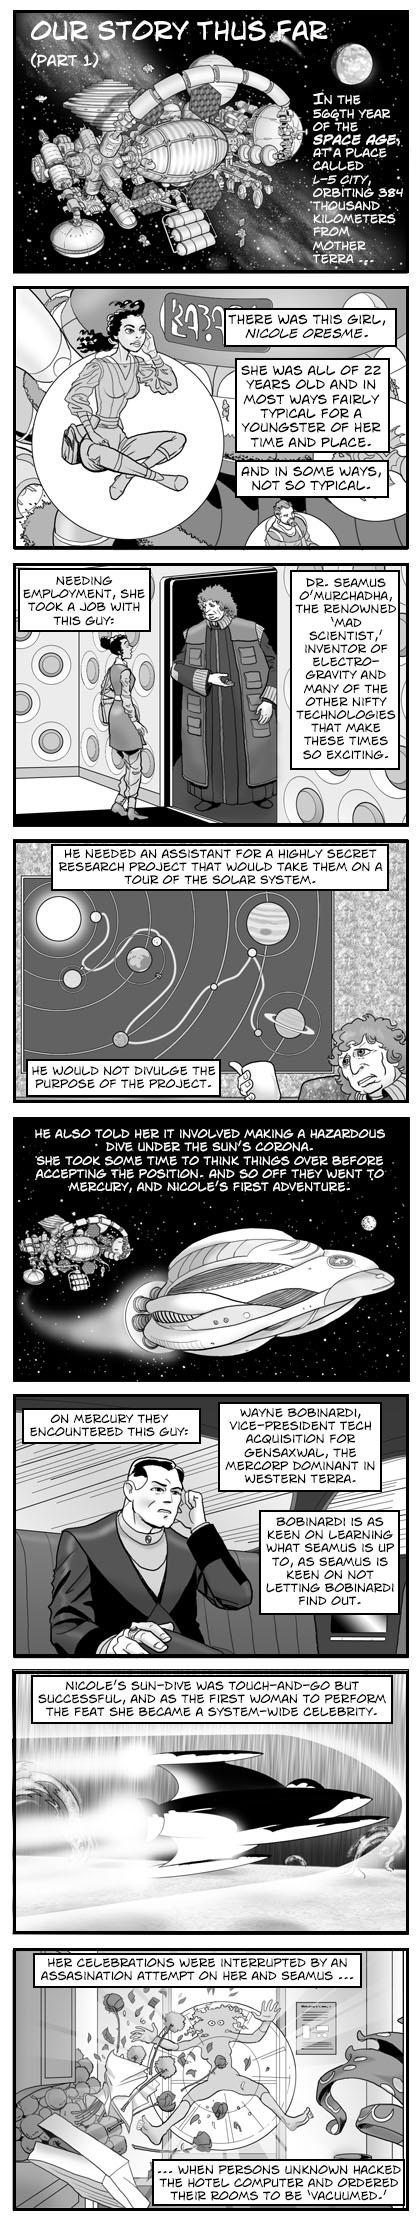 Strip 867 of Quantum Vibe